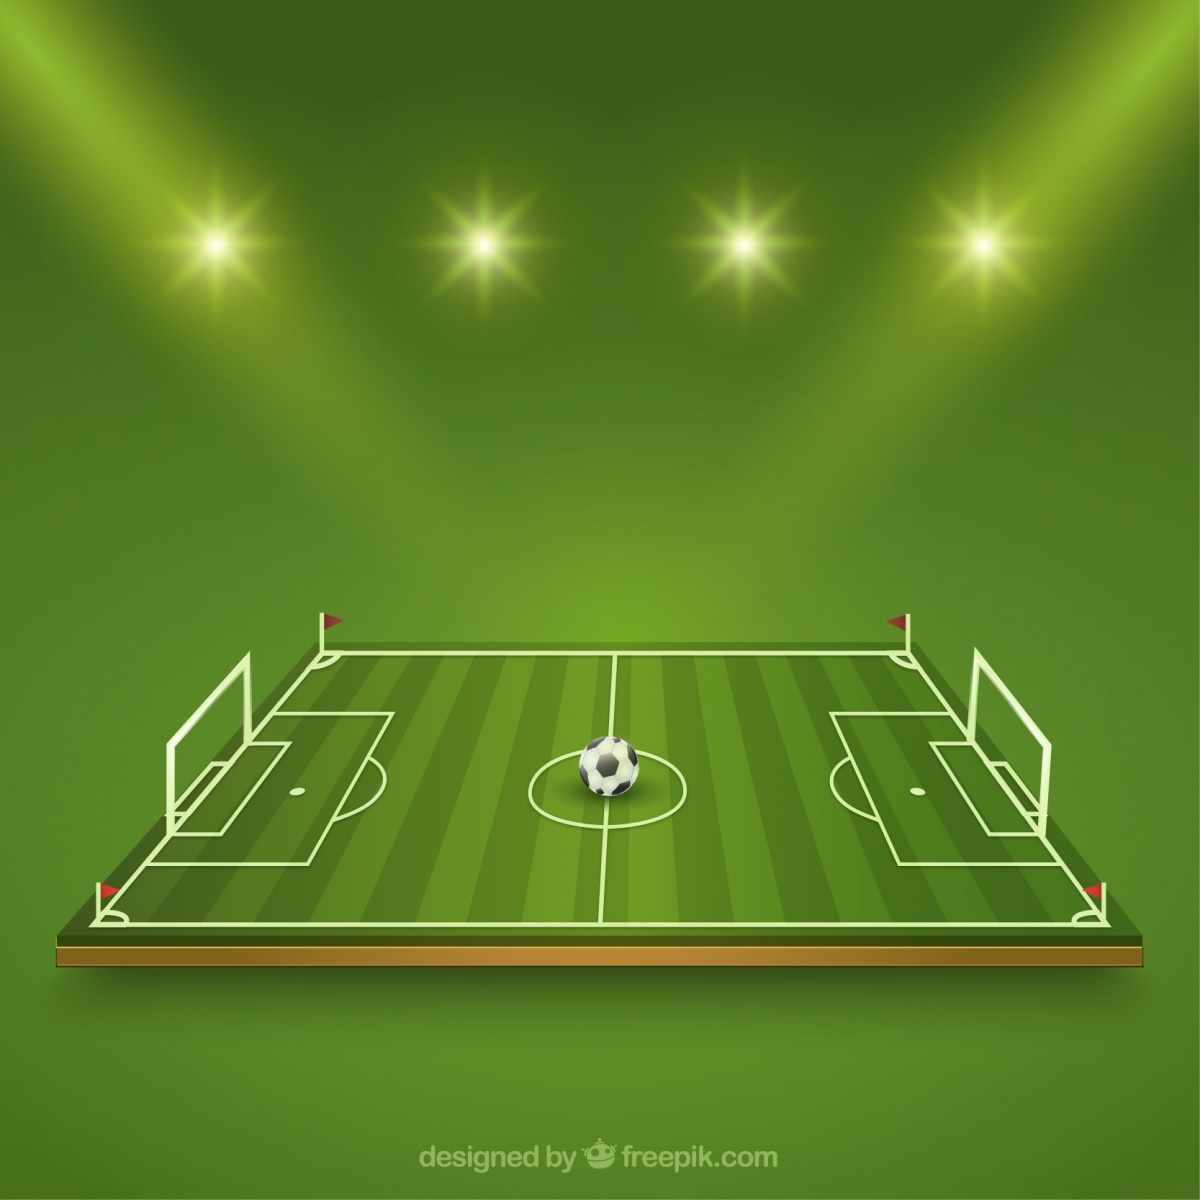 "<a href=""http://www.freepik.com/free-vector/football-field_787098.htm"">Designed by Freepik</a>"